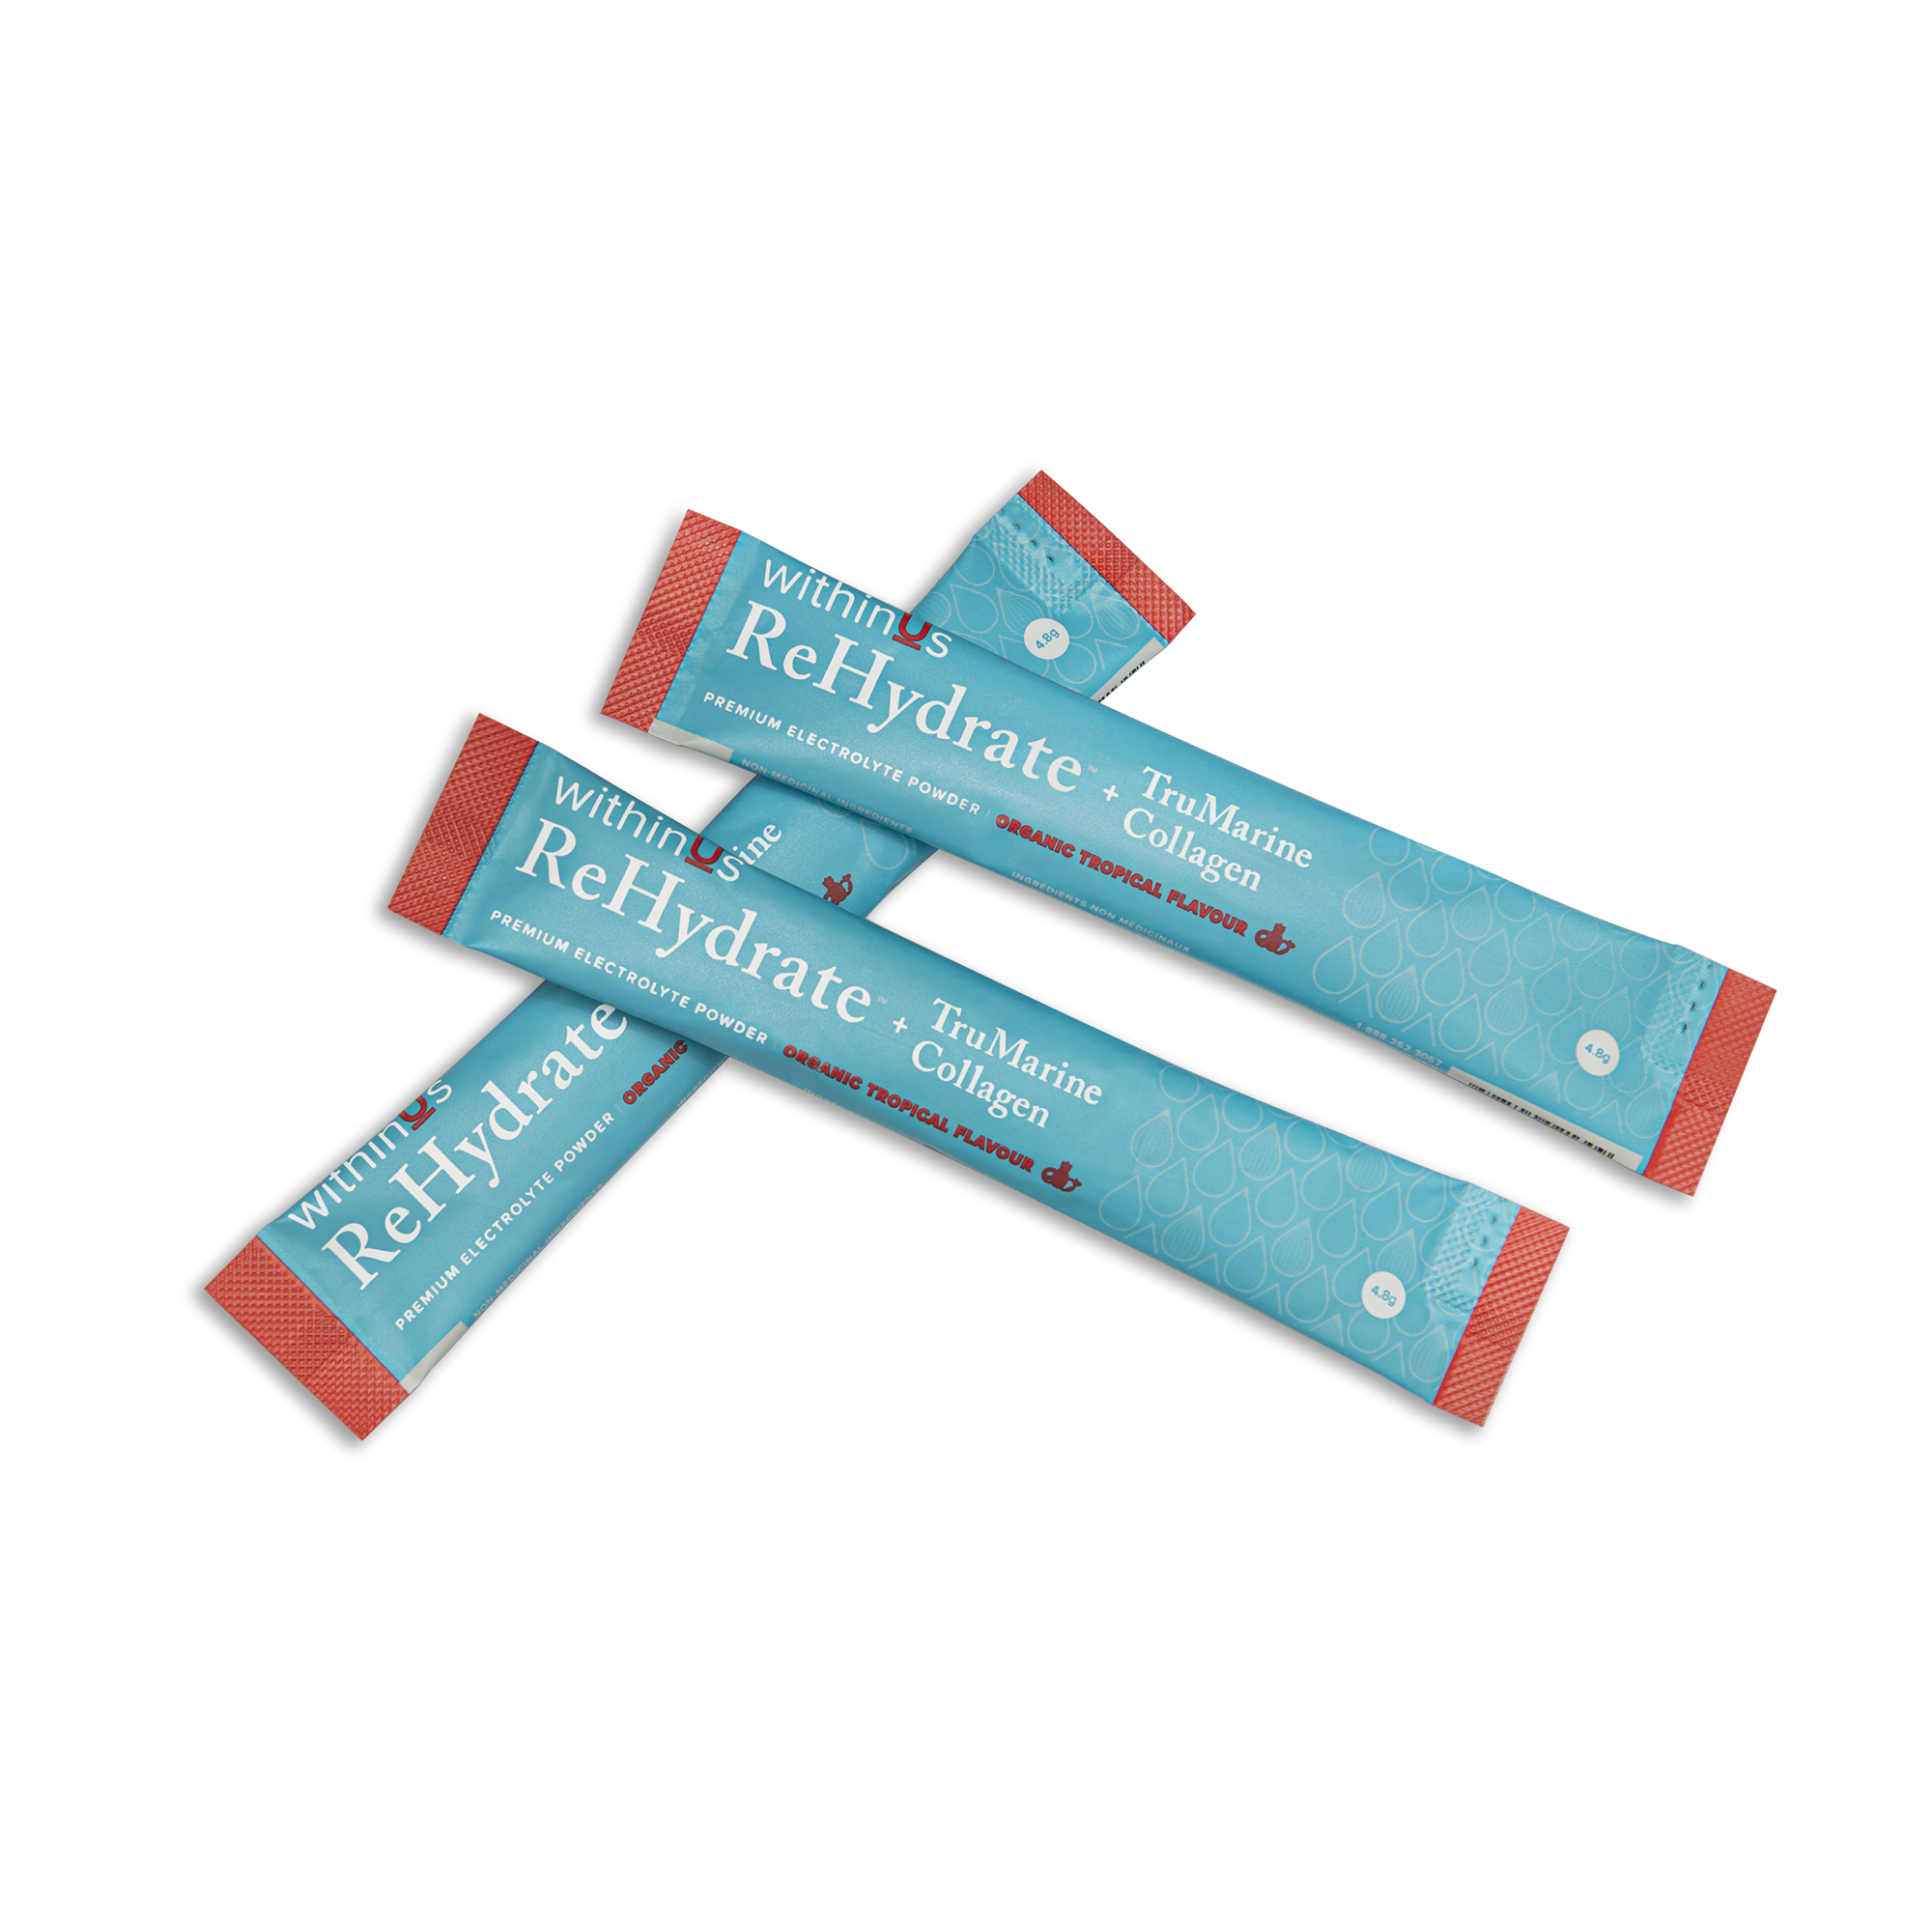 ReHydrate stick packs (50) - TROPICAL